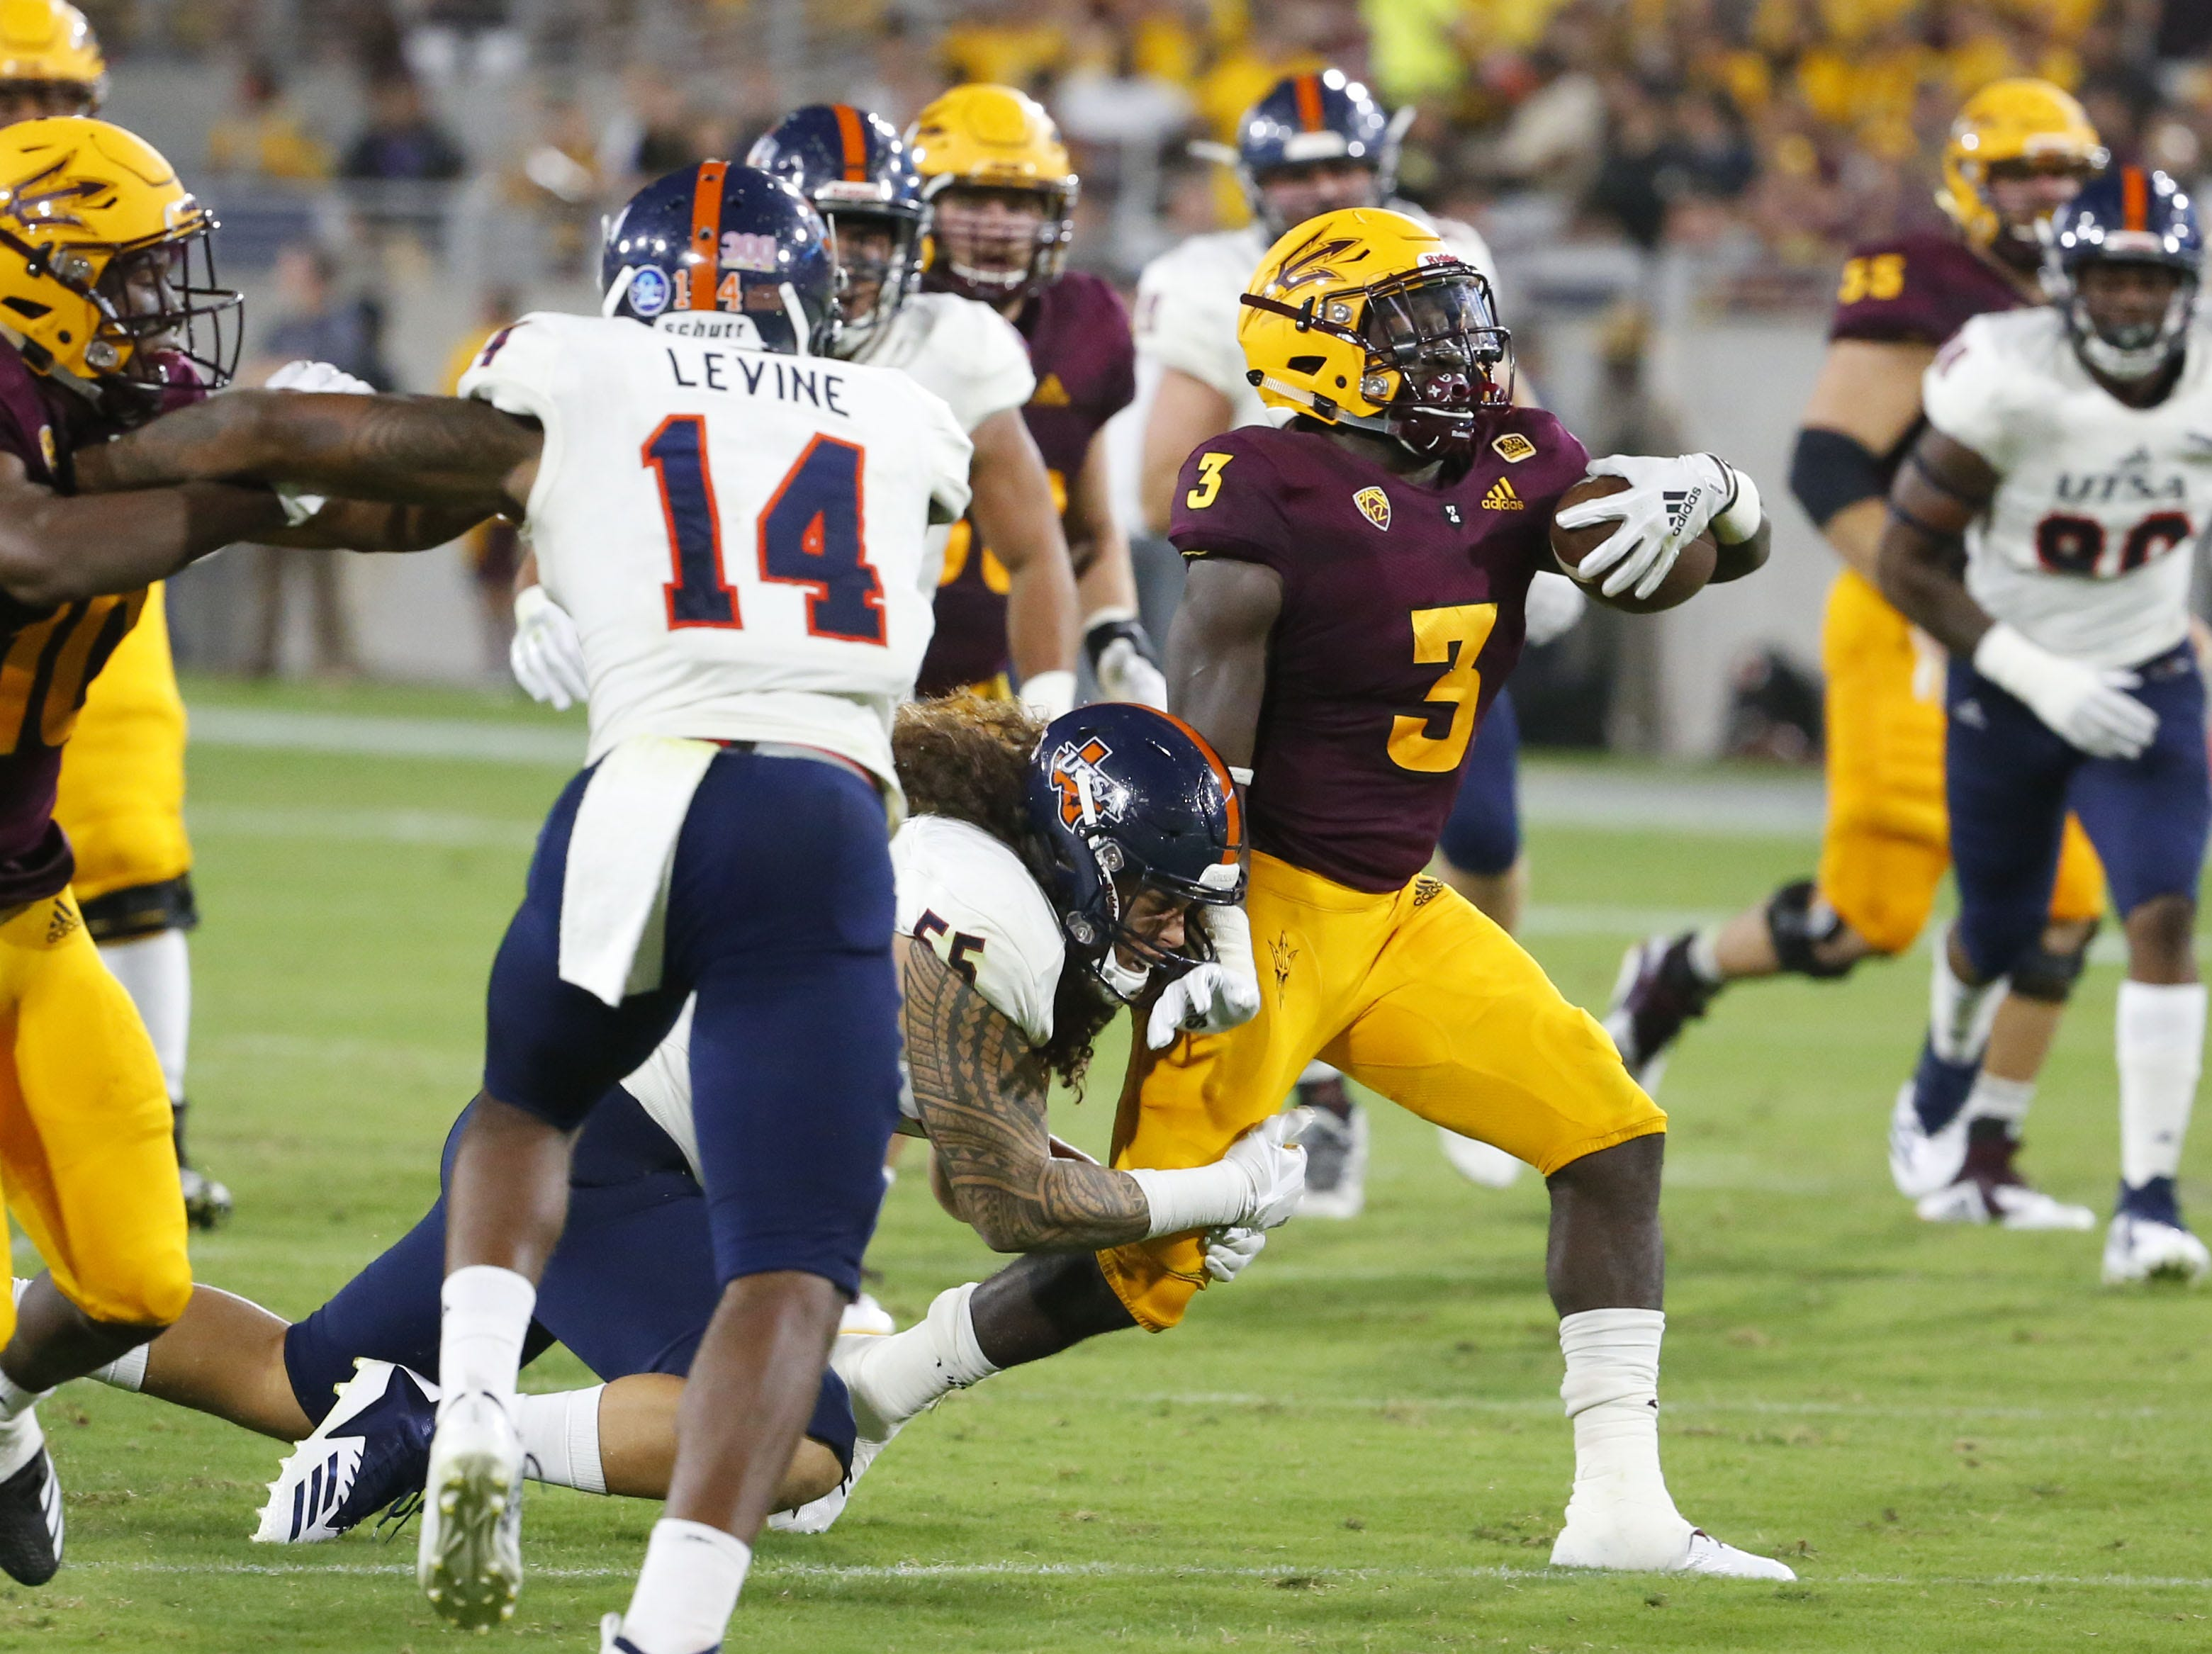 UTSA Roadrunners linebacker Josiah Tauaefa (55) attempts to tackle Arizona State Sun Devils running back Eno Benjamin (3) during a football game at Sun Devil Stadium in Tempe on September 1, 2018.